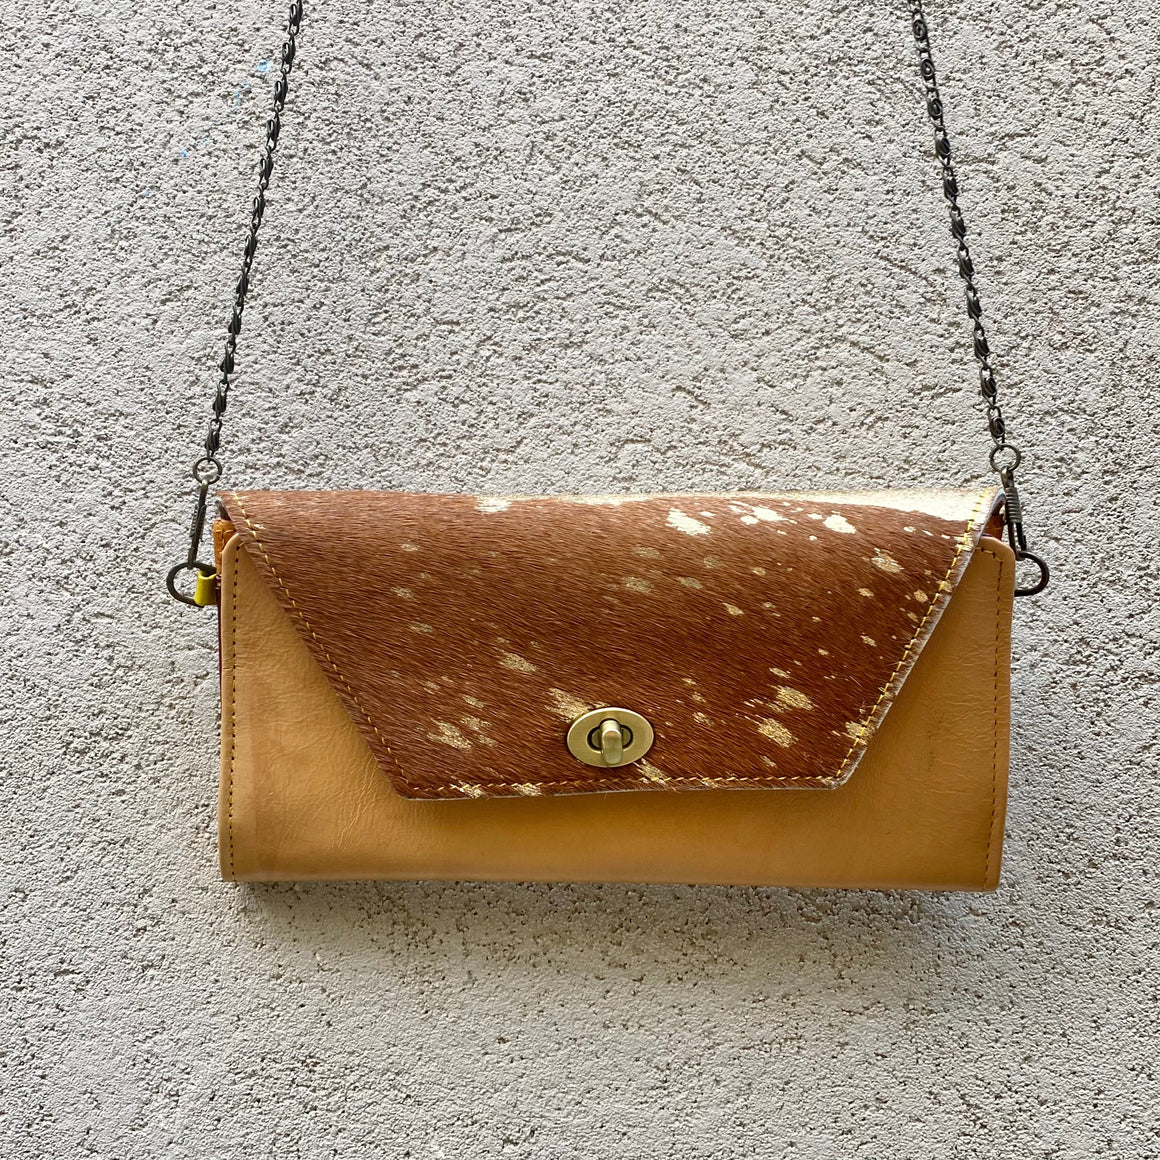 Harley Cowhide and Leather Crossbody Wallet Clutch - Tan, Gold Foil, wallets - KITTY KAT,